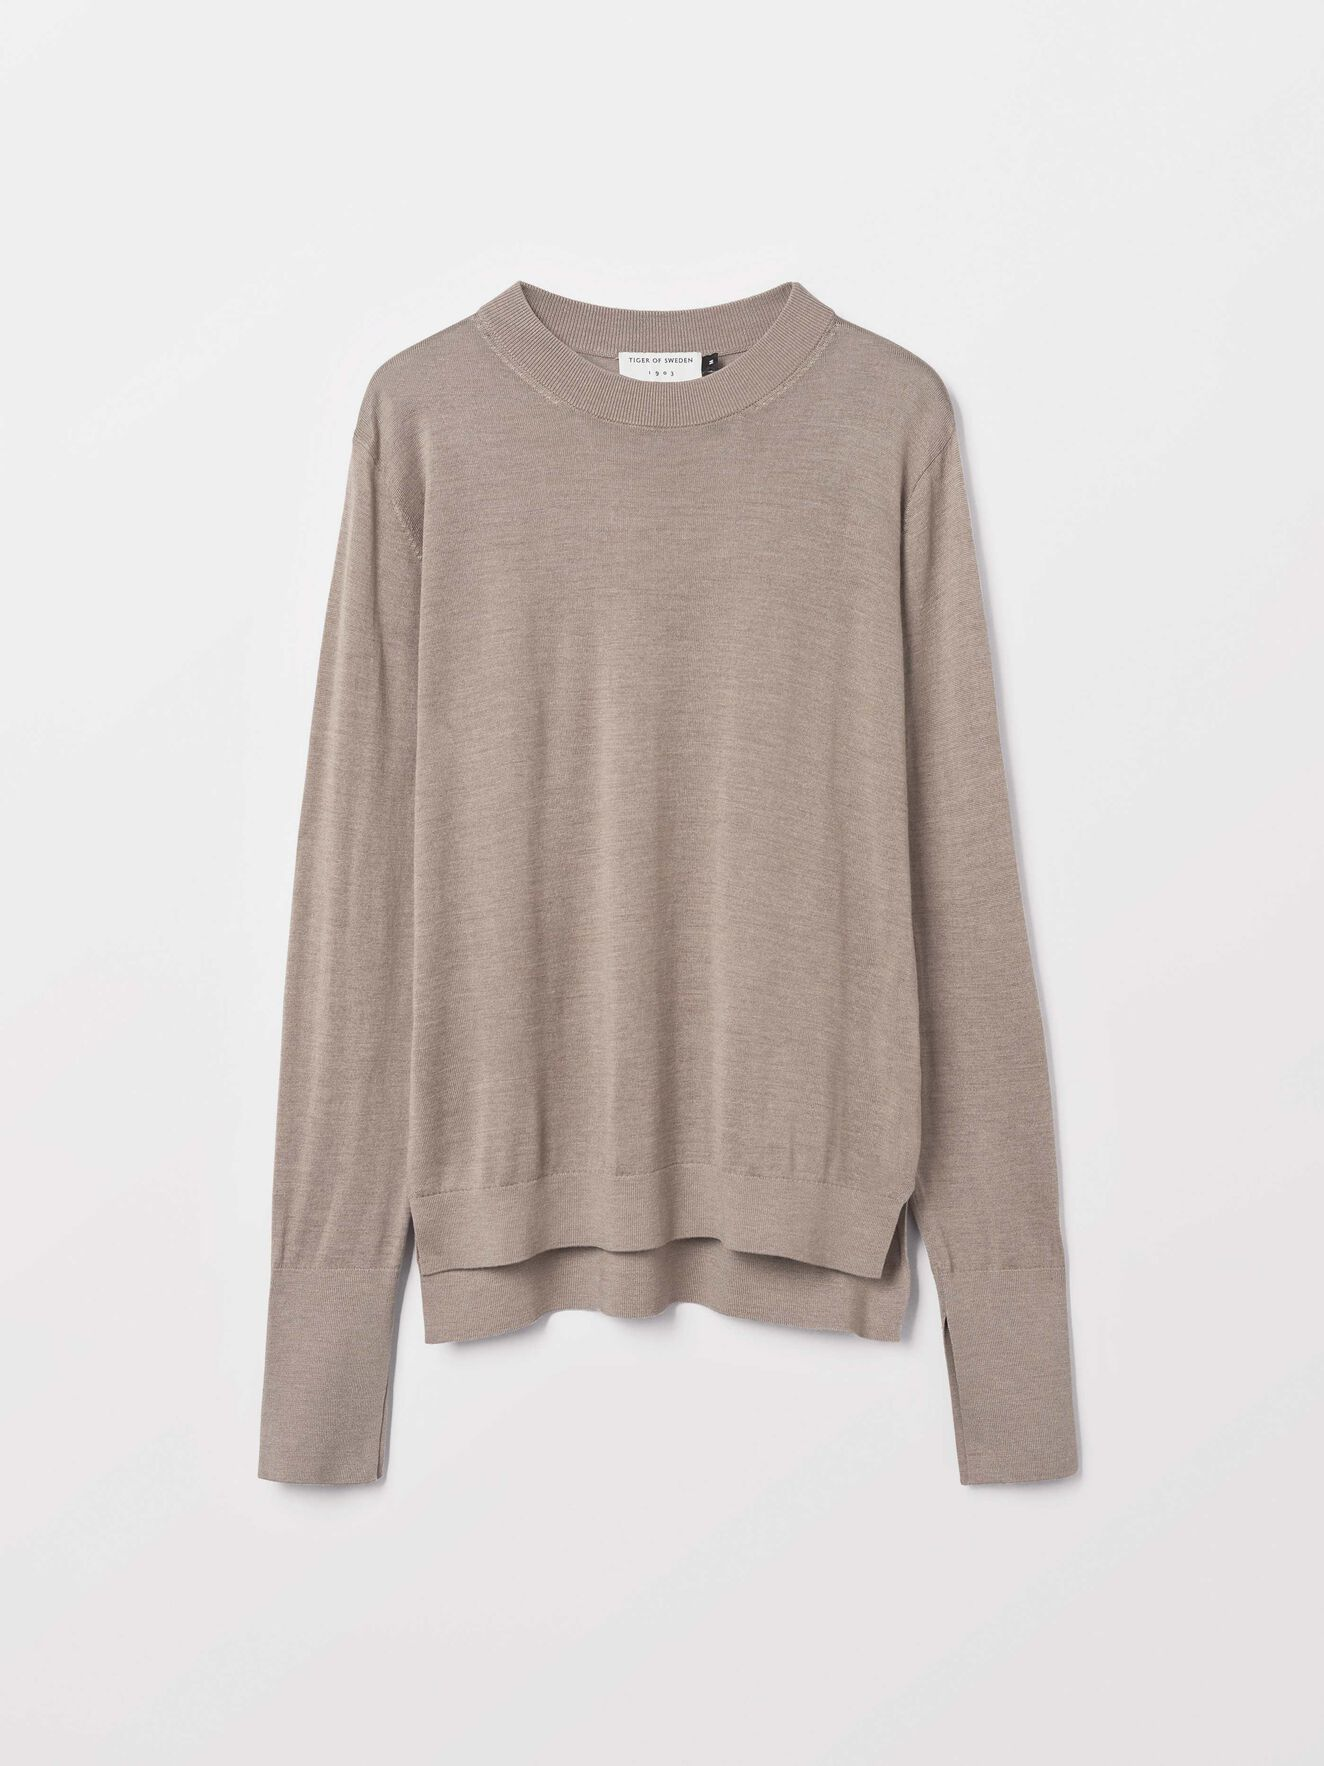 Macette Pullover in Macchiato from Tiger of Sweden